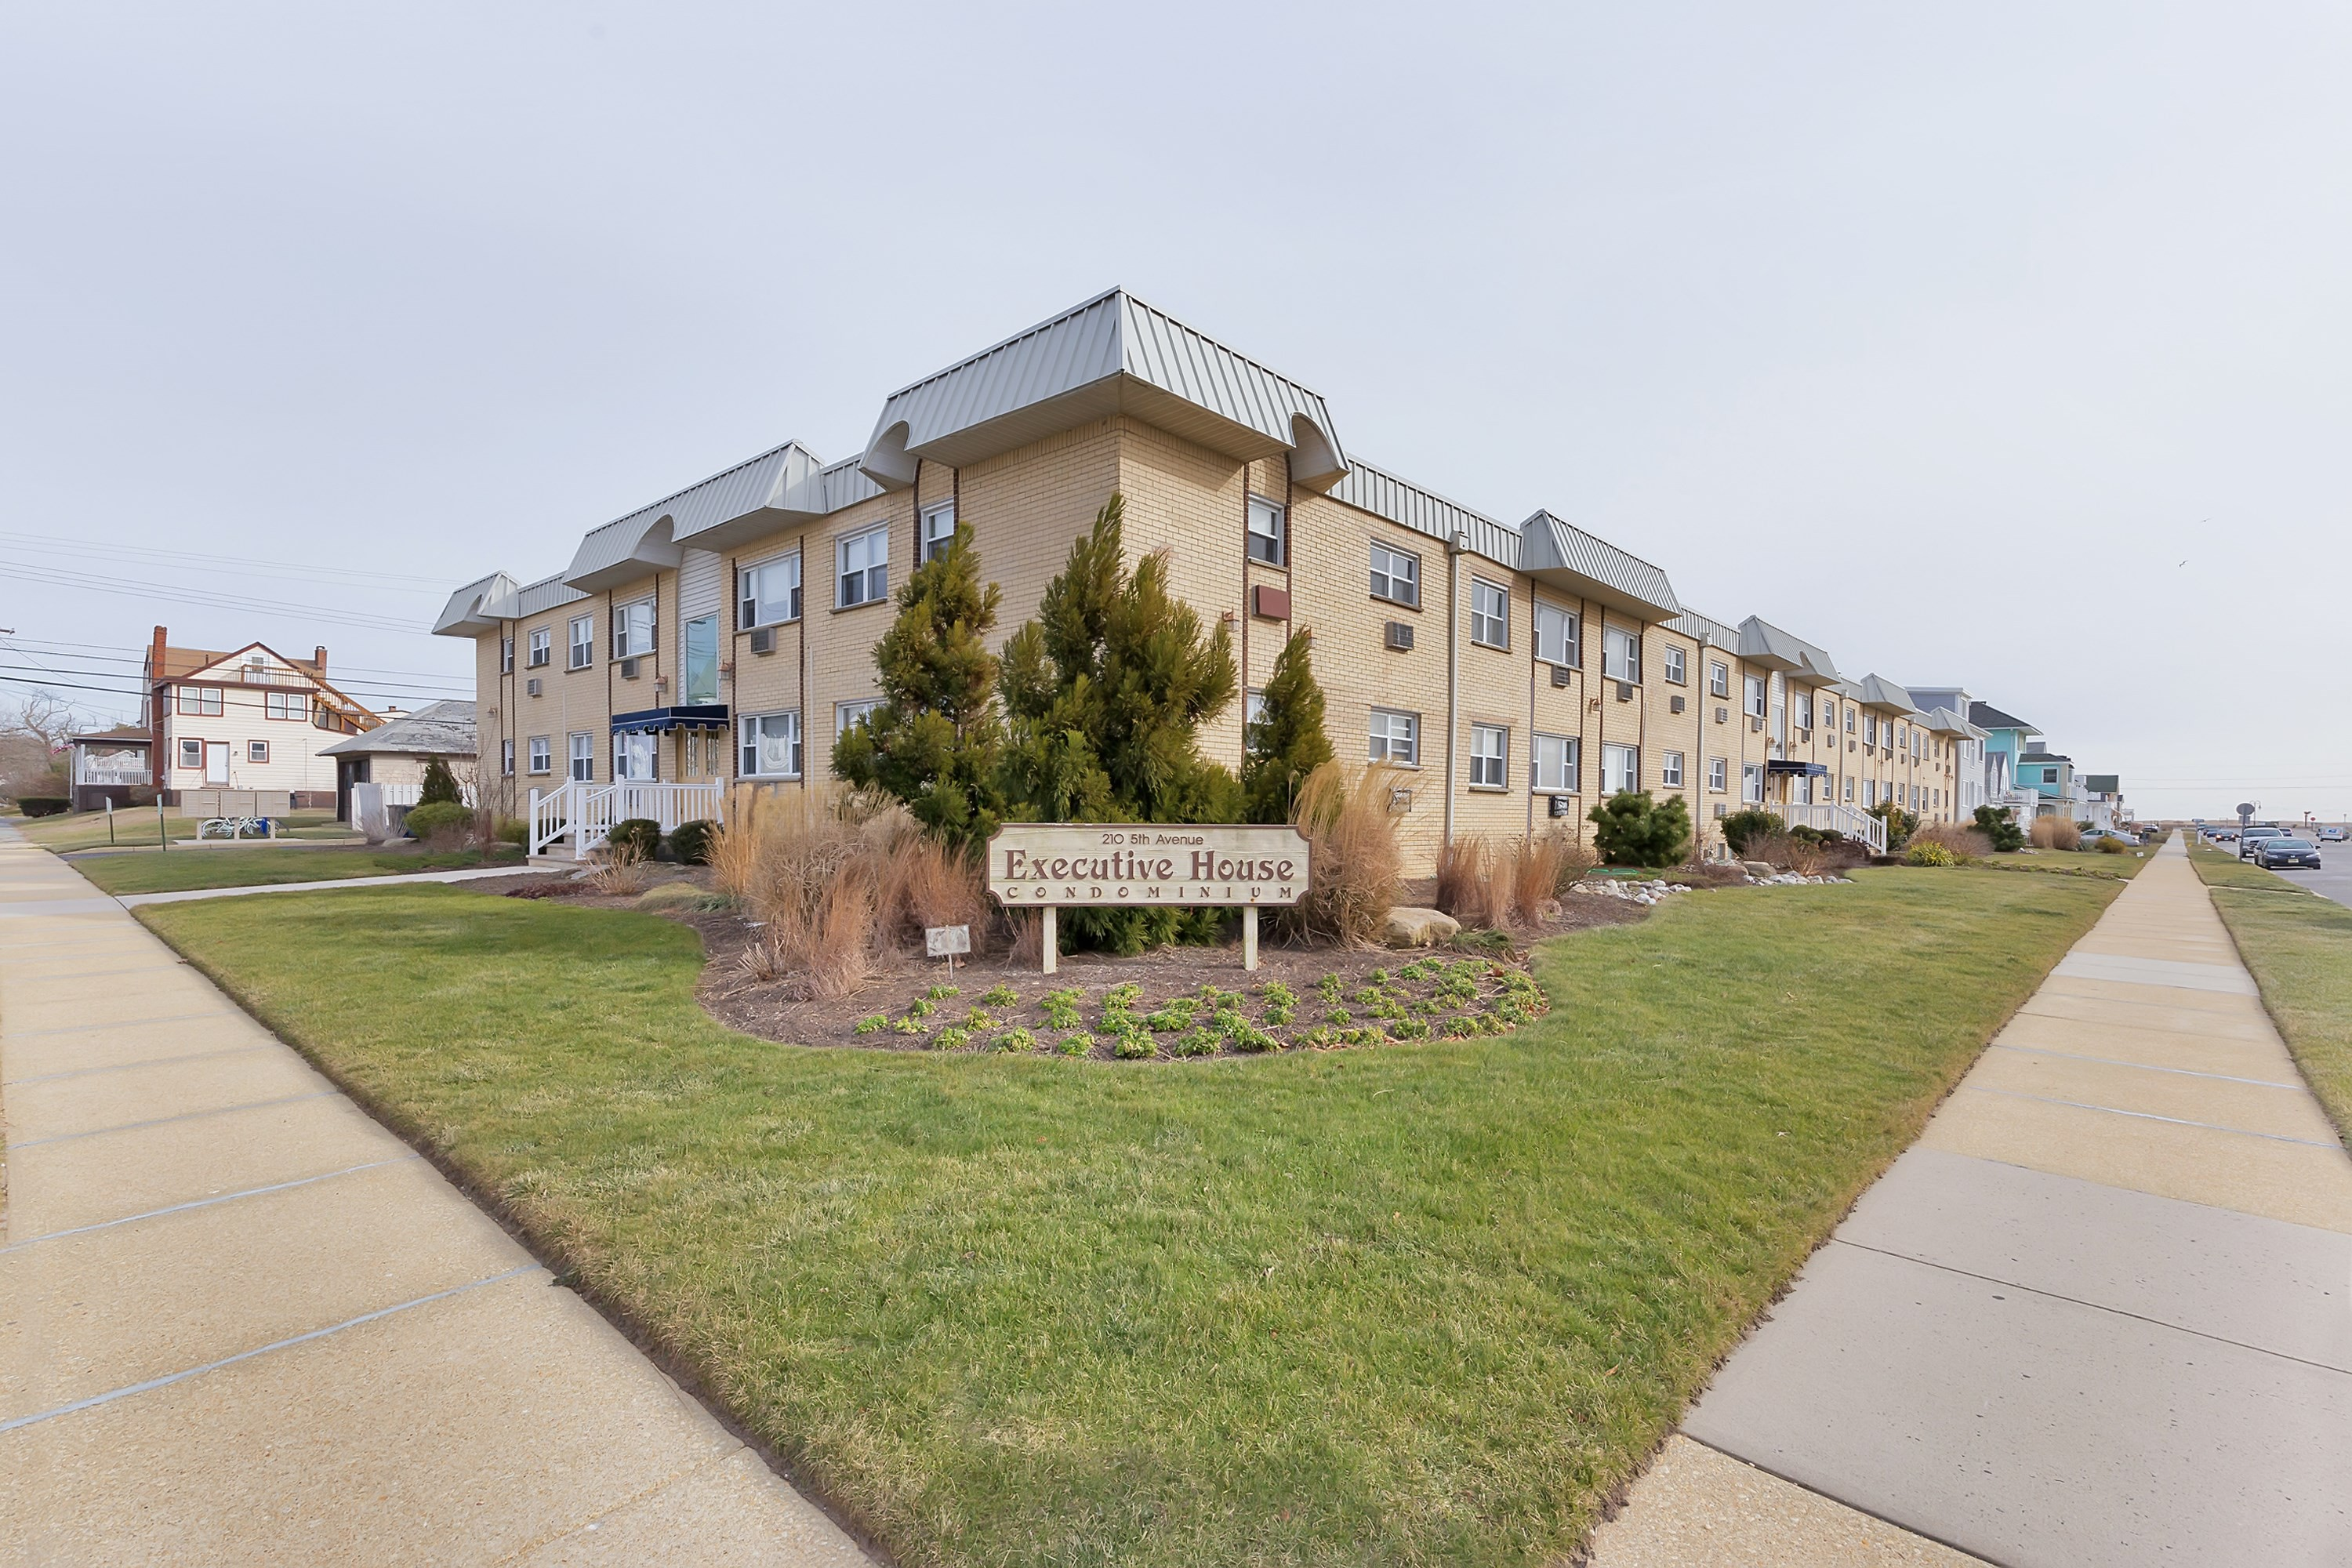 Condominium for Sale at Condo Near Beach 210 5th Ave Unit 12 Belmar, New Jersey 07719 United States